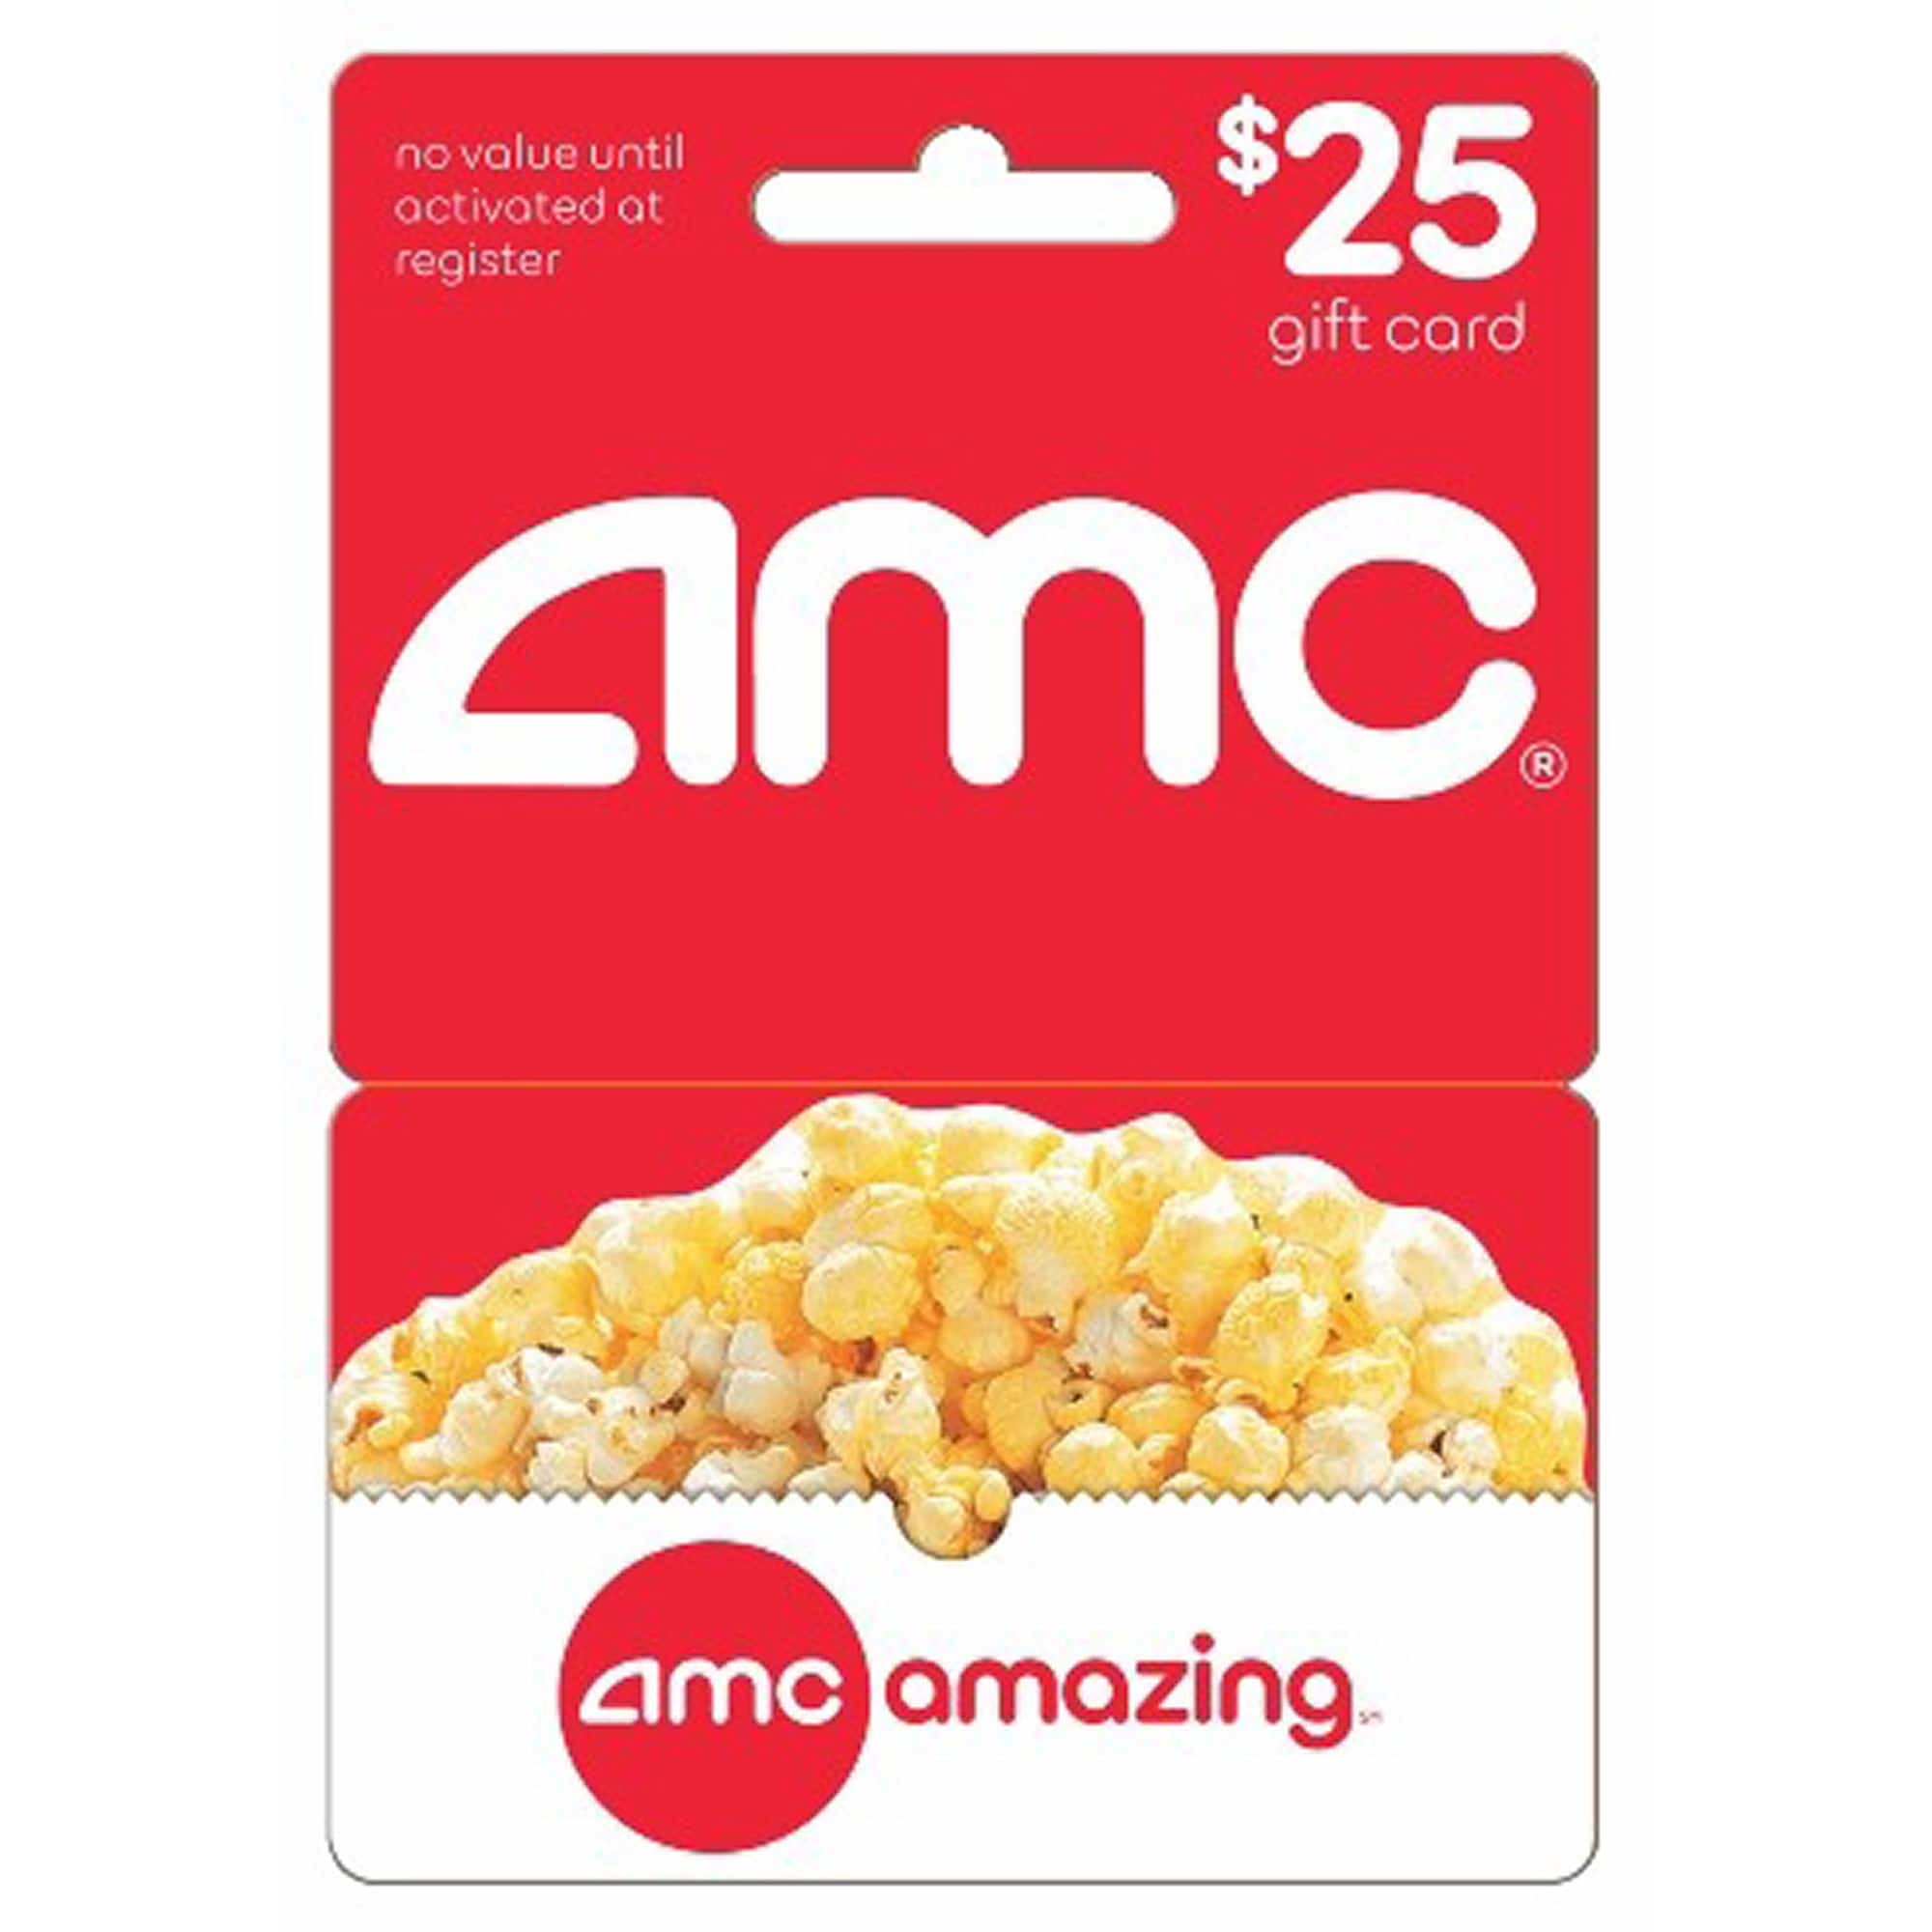 25 amc gift card 1899 free shipping at bjs wholesale 25 amc gift card 1899 free shipping at bjs wholesale xflitez Gallery